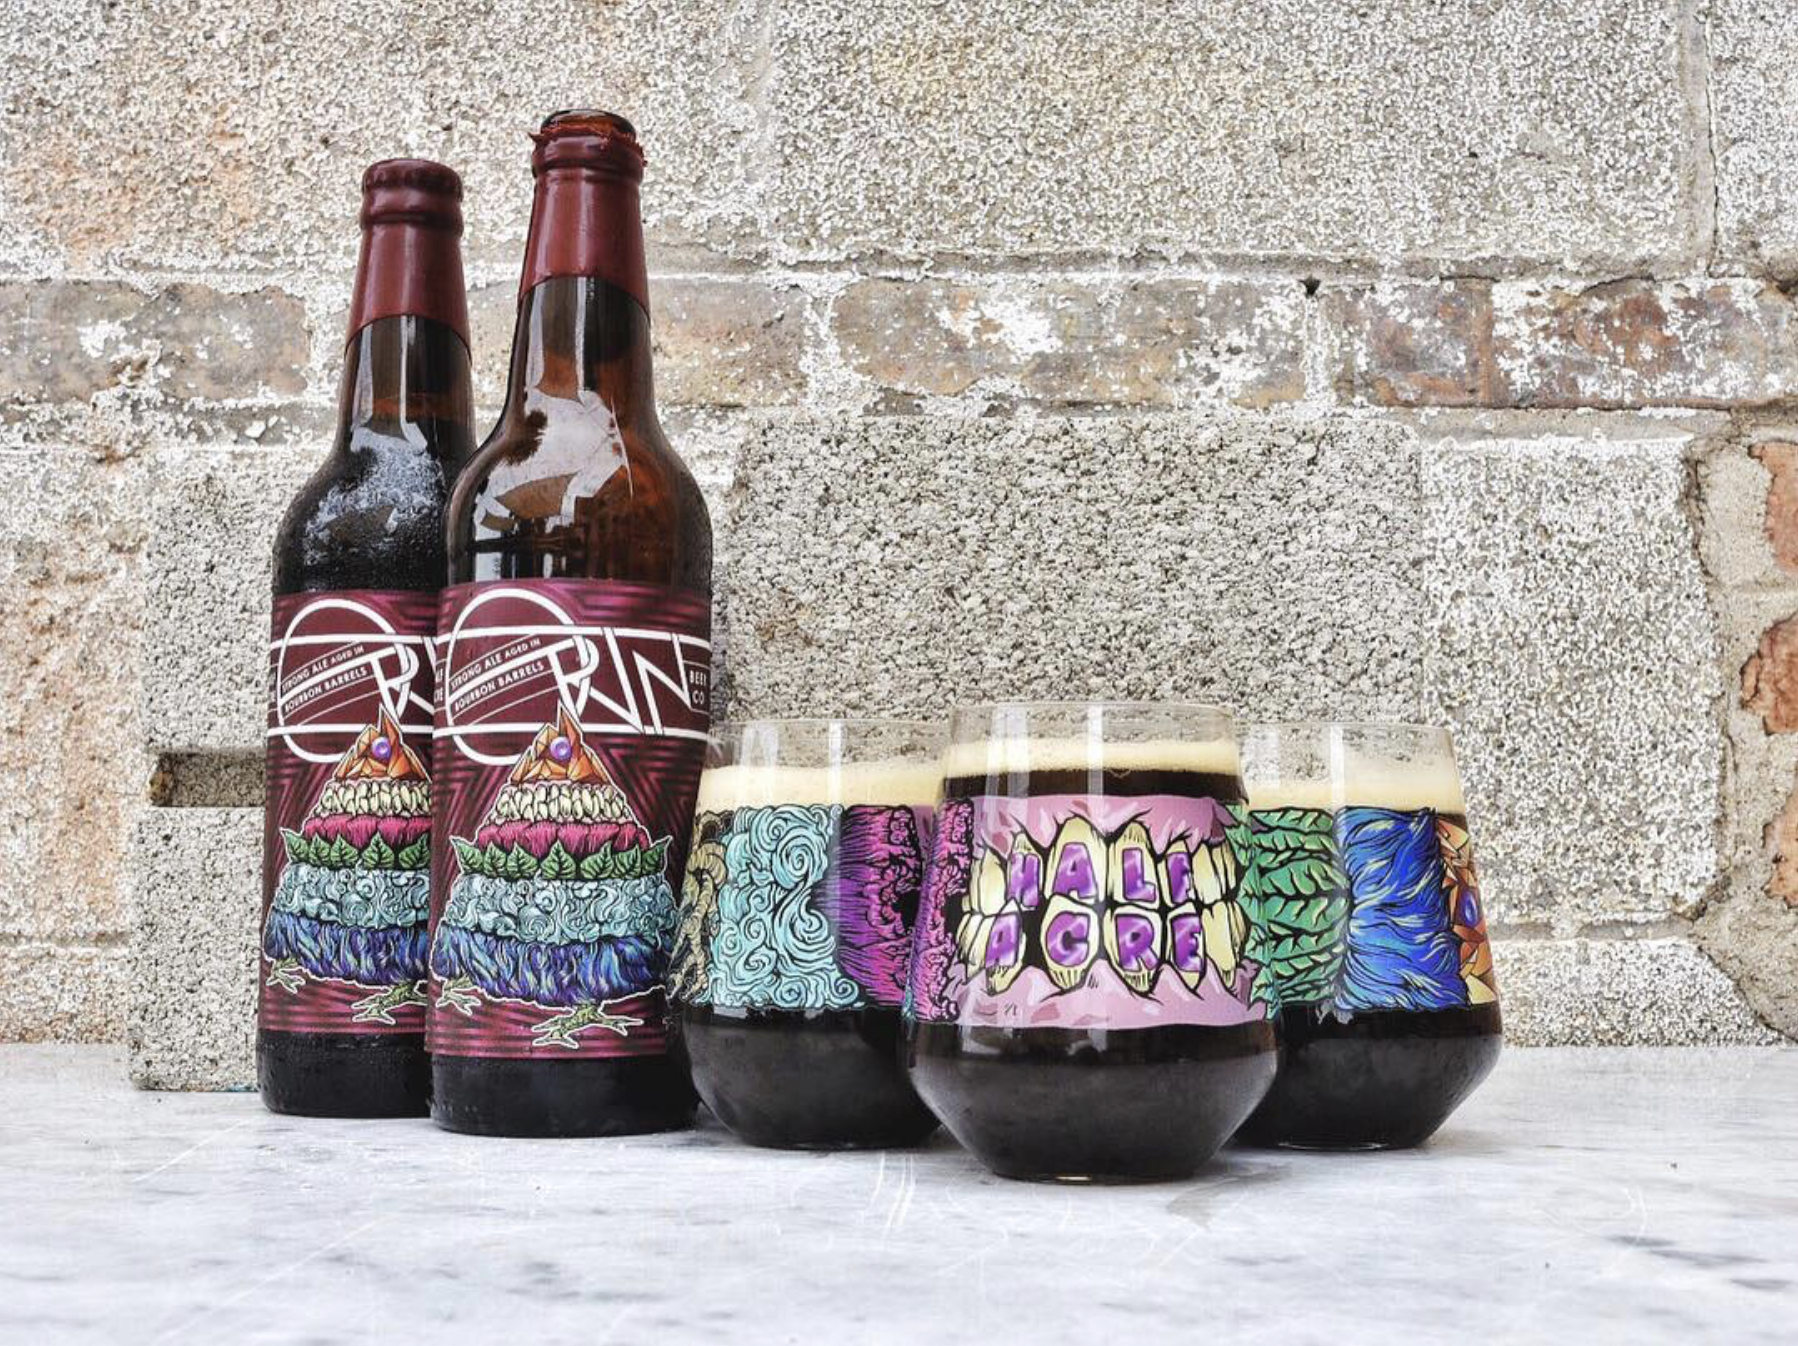 Orin Bombers and Matching Glassware